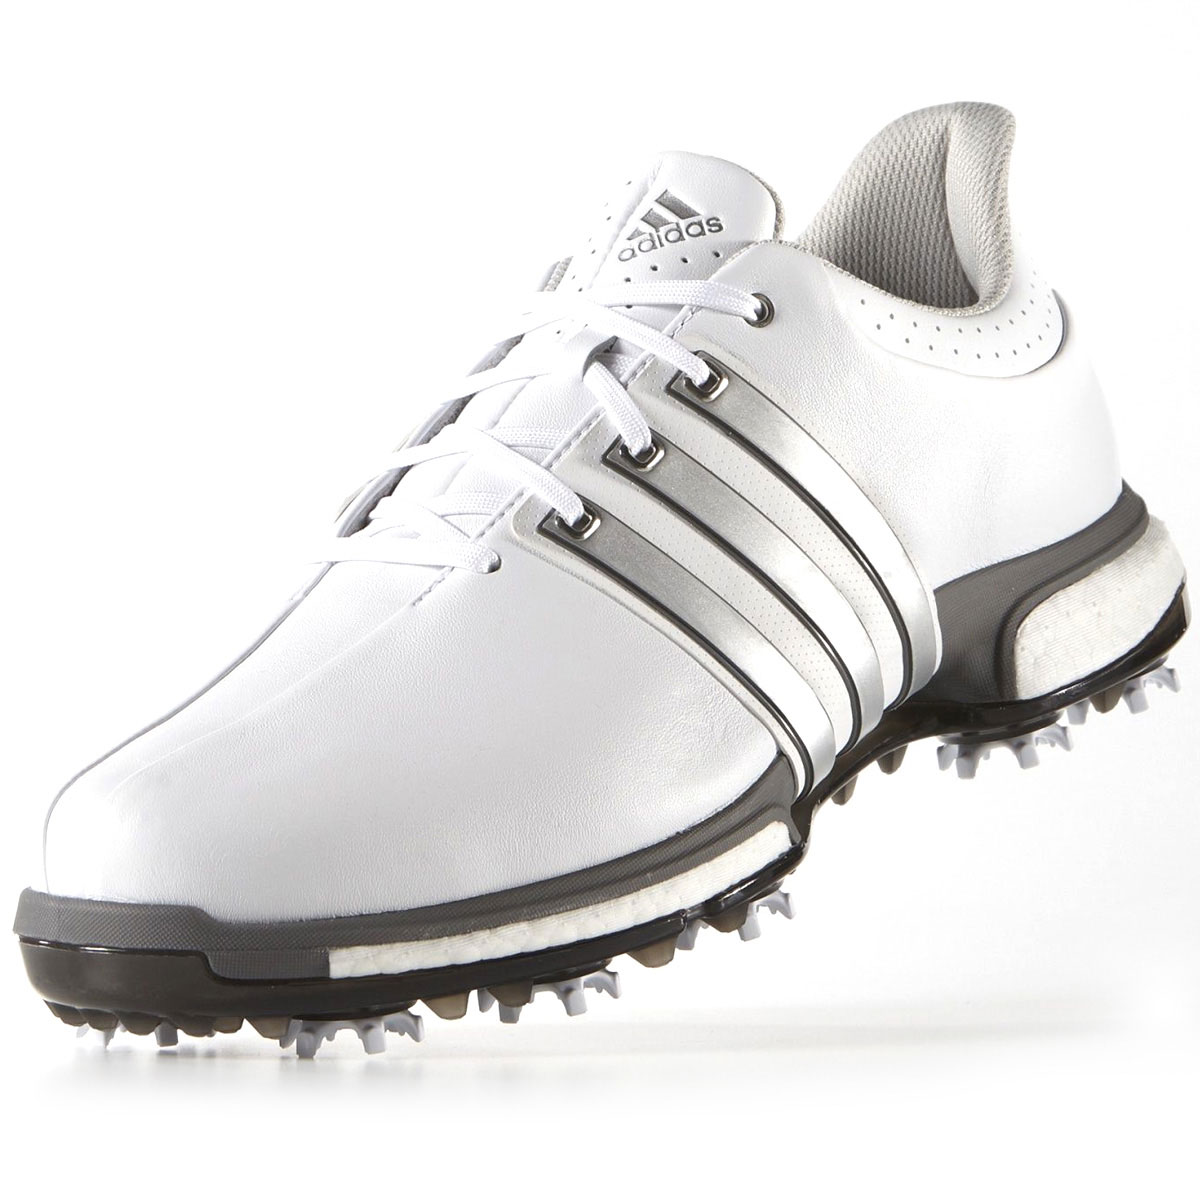 adidas shoes golf